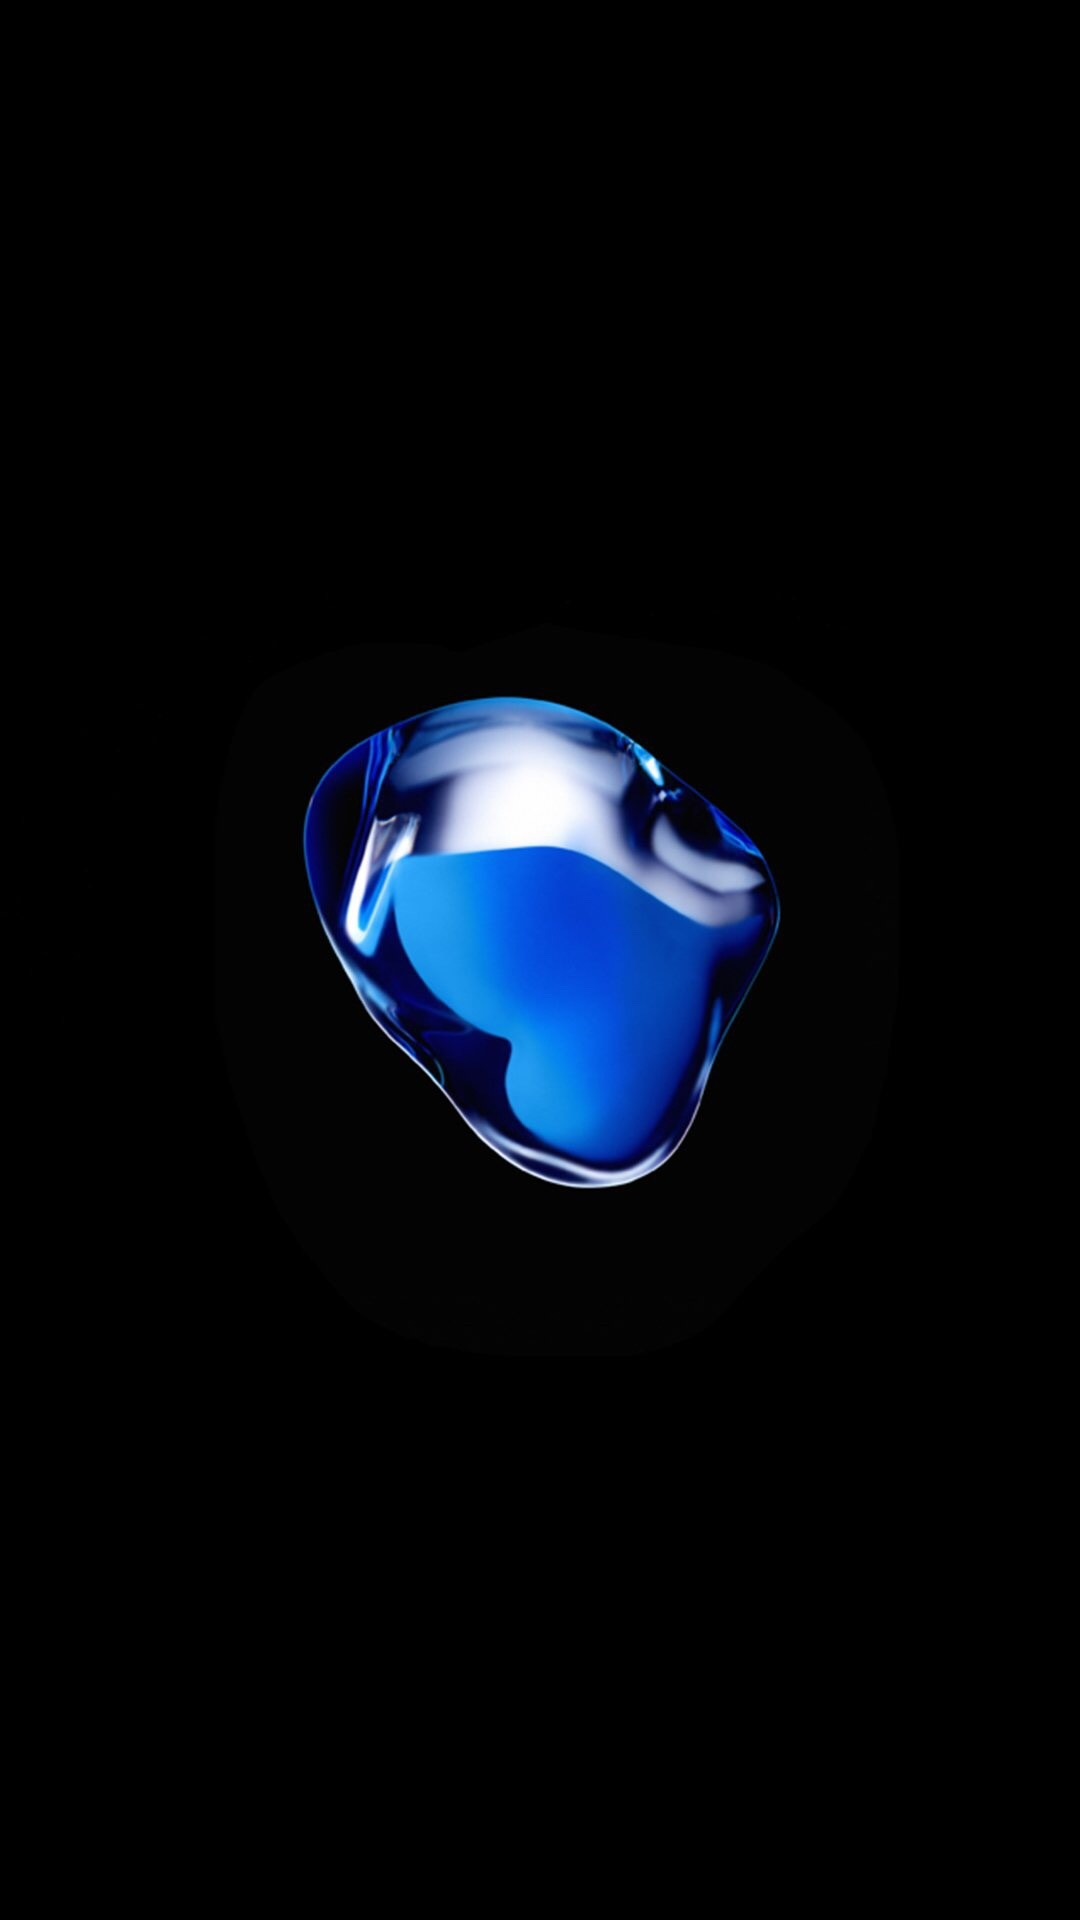 The Blue blob wallpaper in the iPhone 7 ads-img_0365.jpg